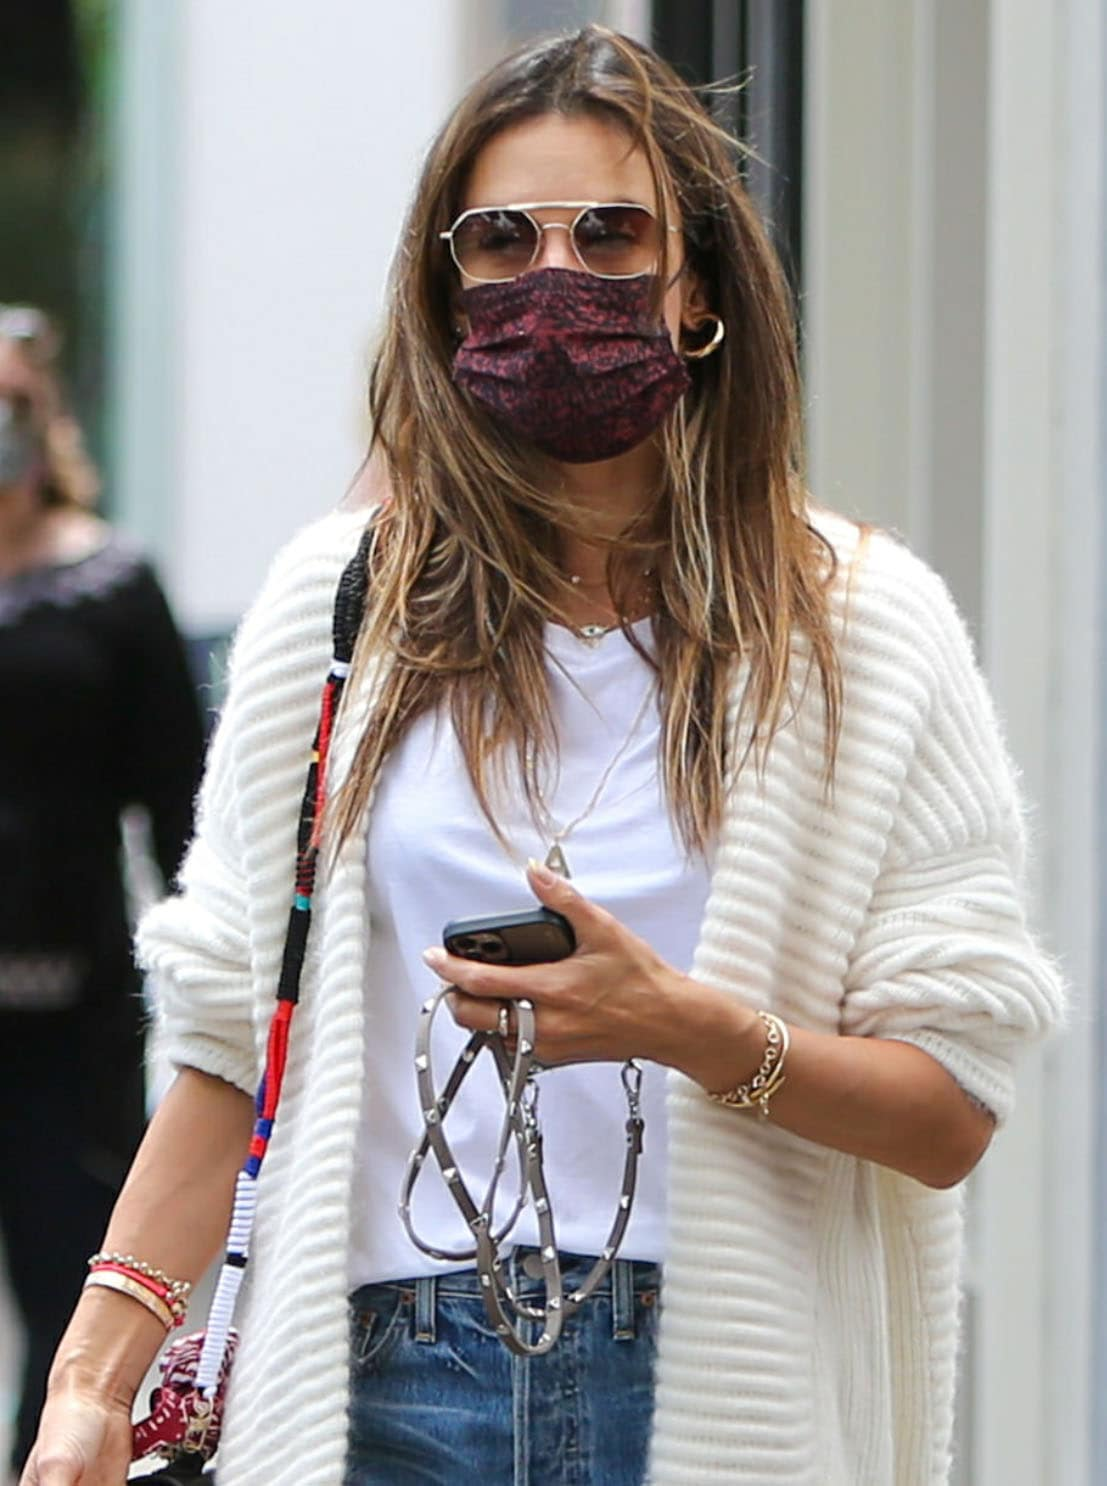 Alessandra Ambrosio looks fresh in a white tee with blue jeans and an off-white sweater